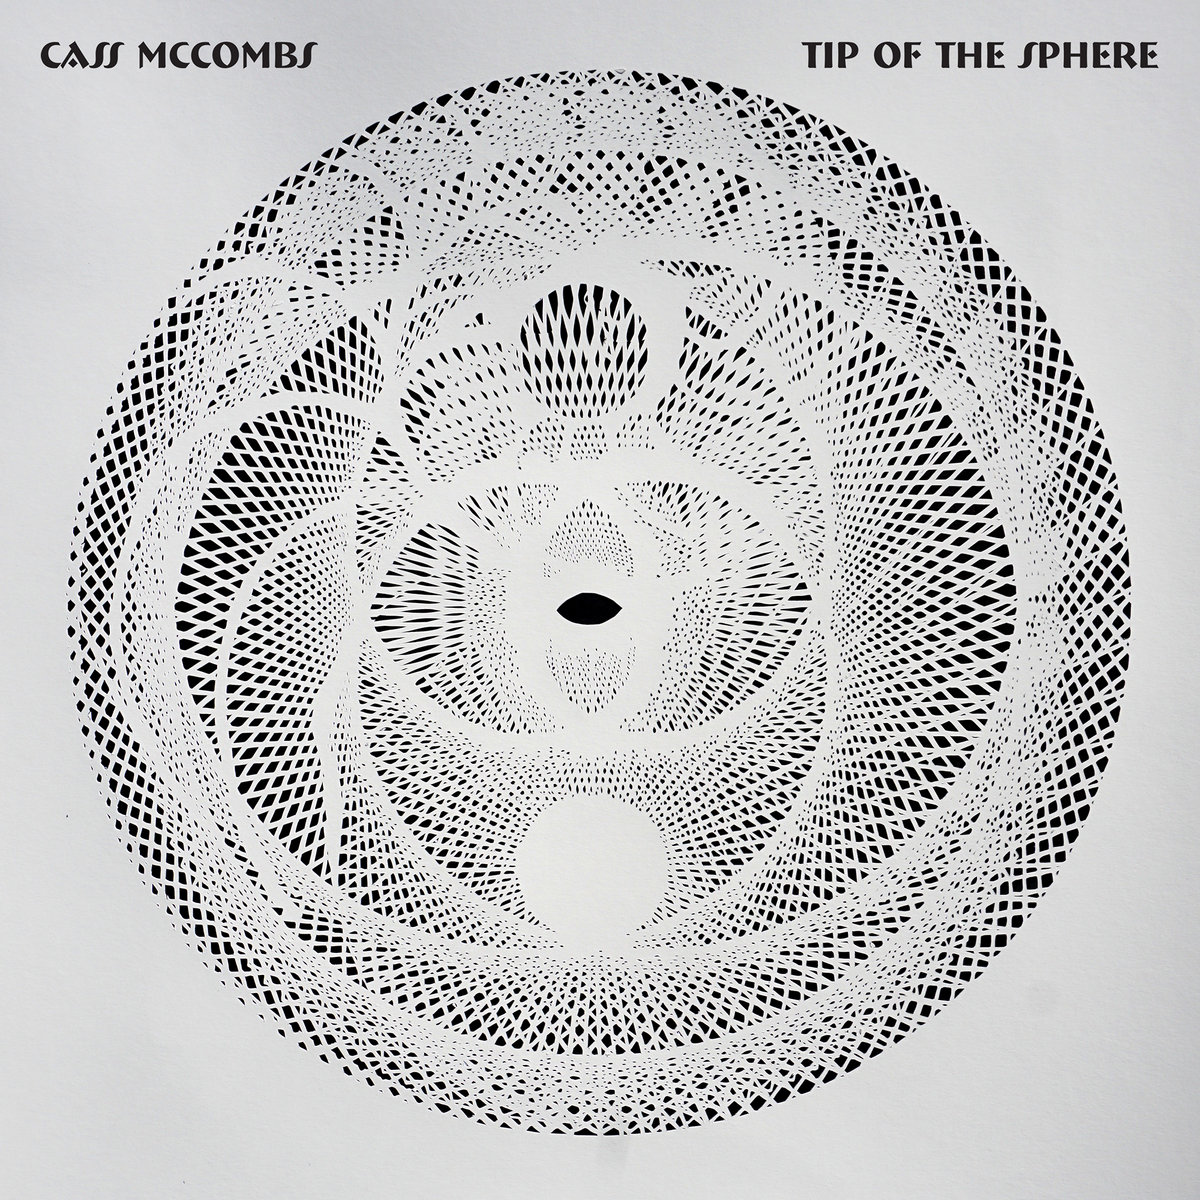 Image result for cass mccombs tip of the sphere""